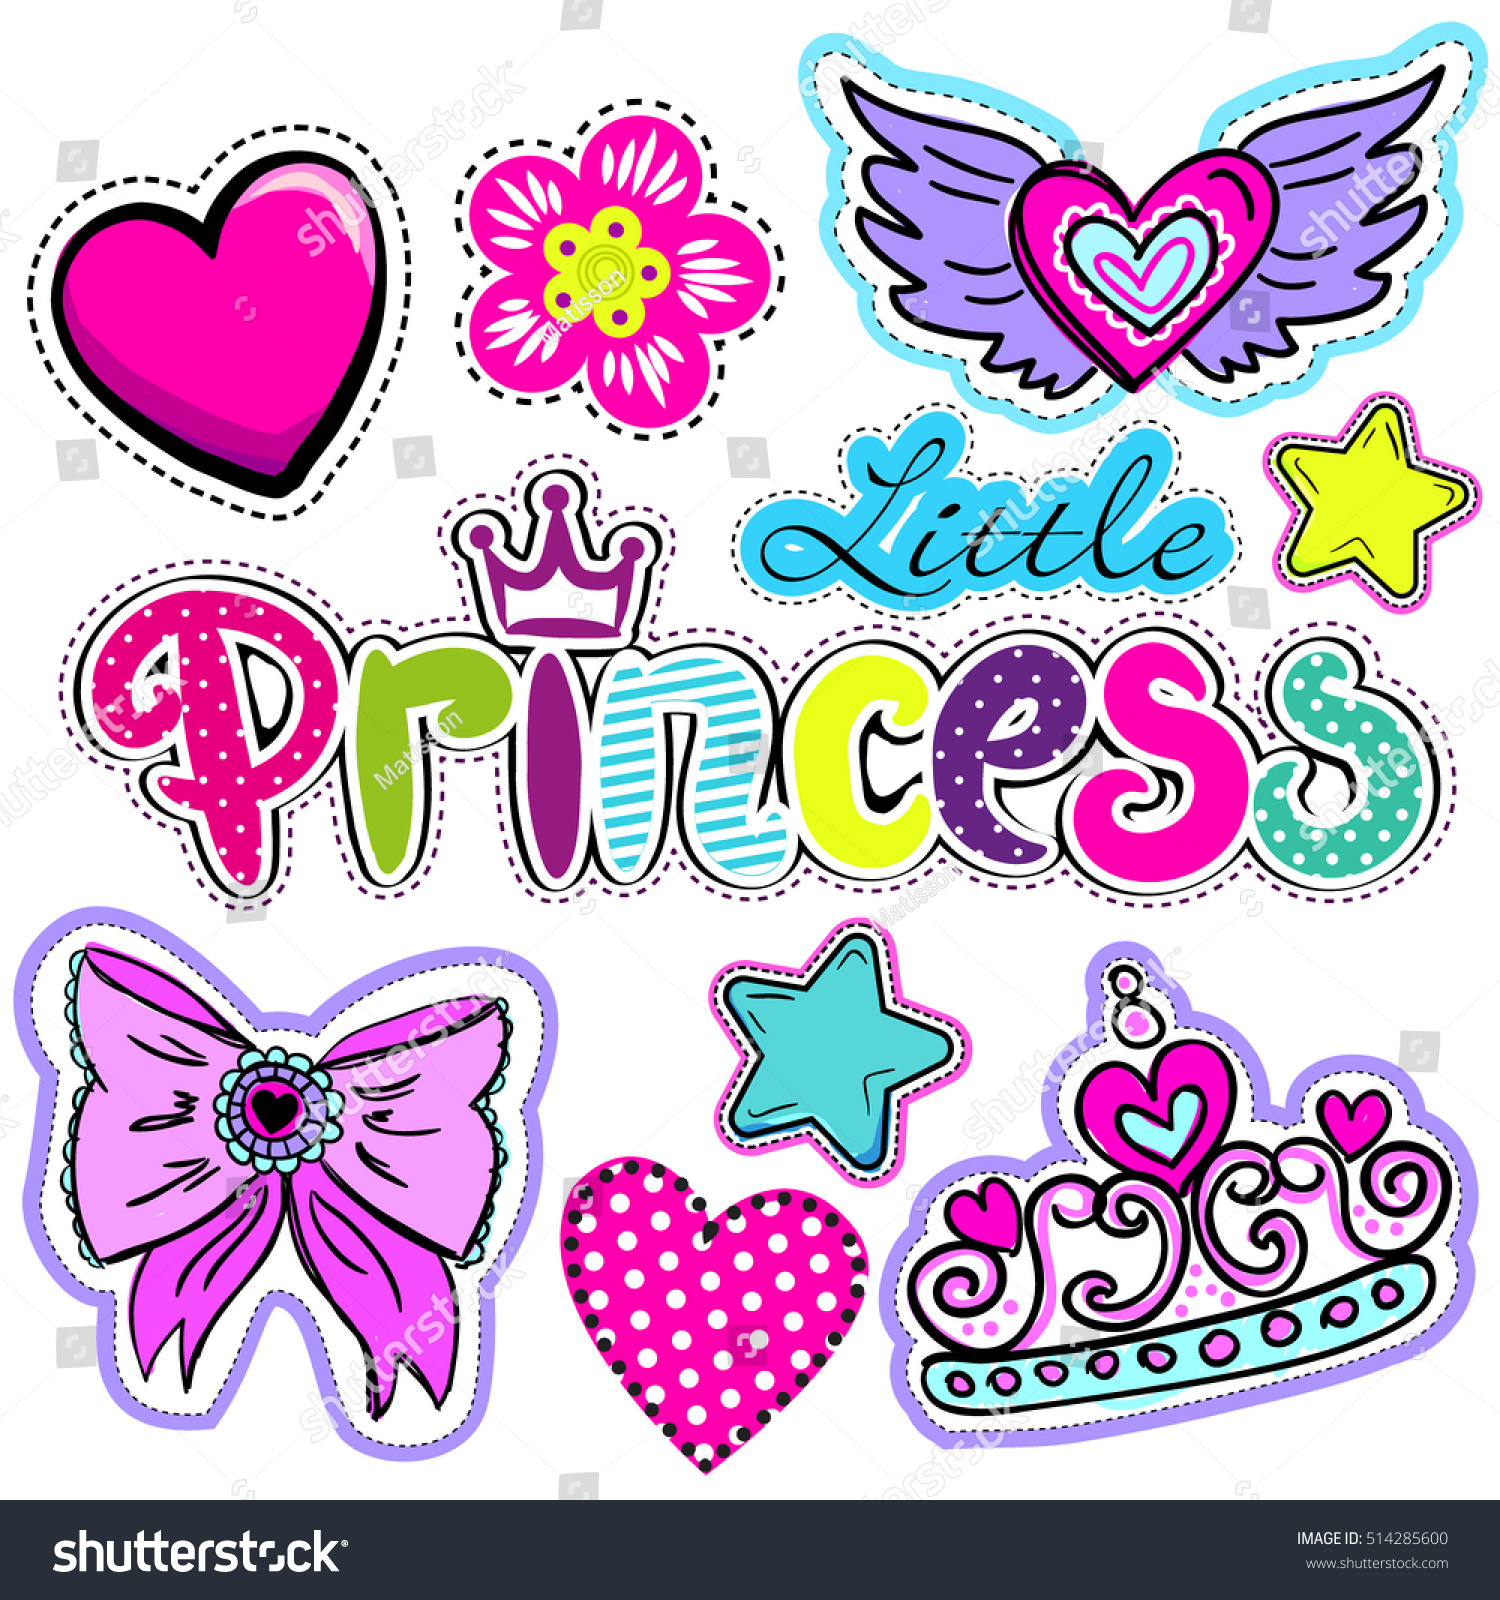 Set Cute Stickers Hearts Love Crown Stock Vector Royalty Free